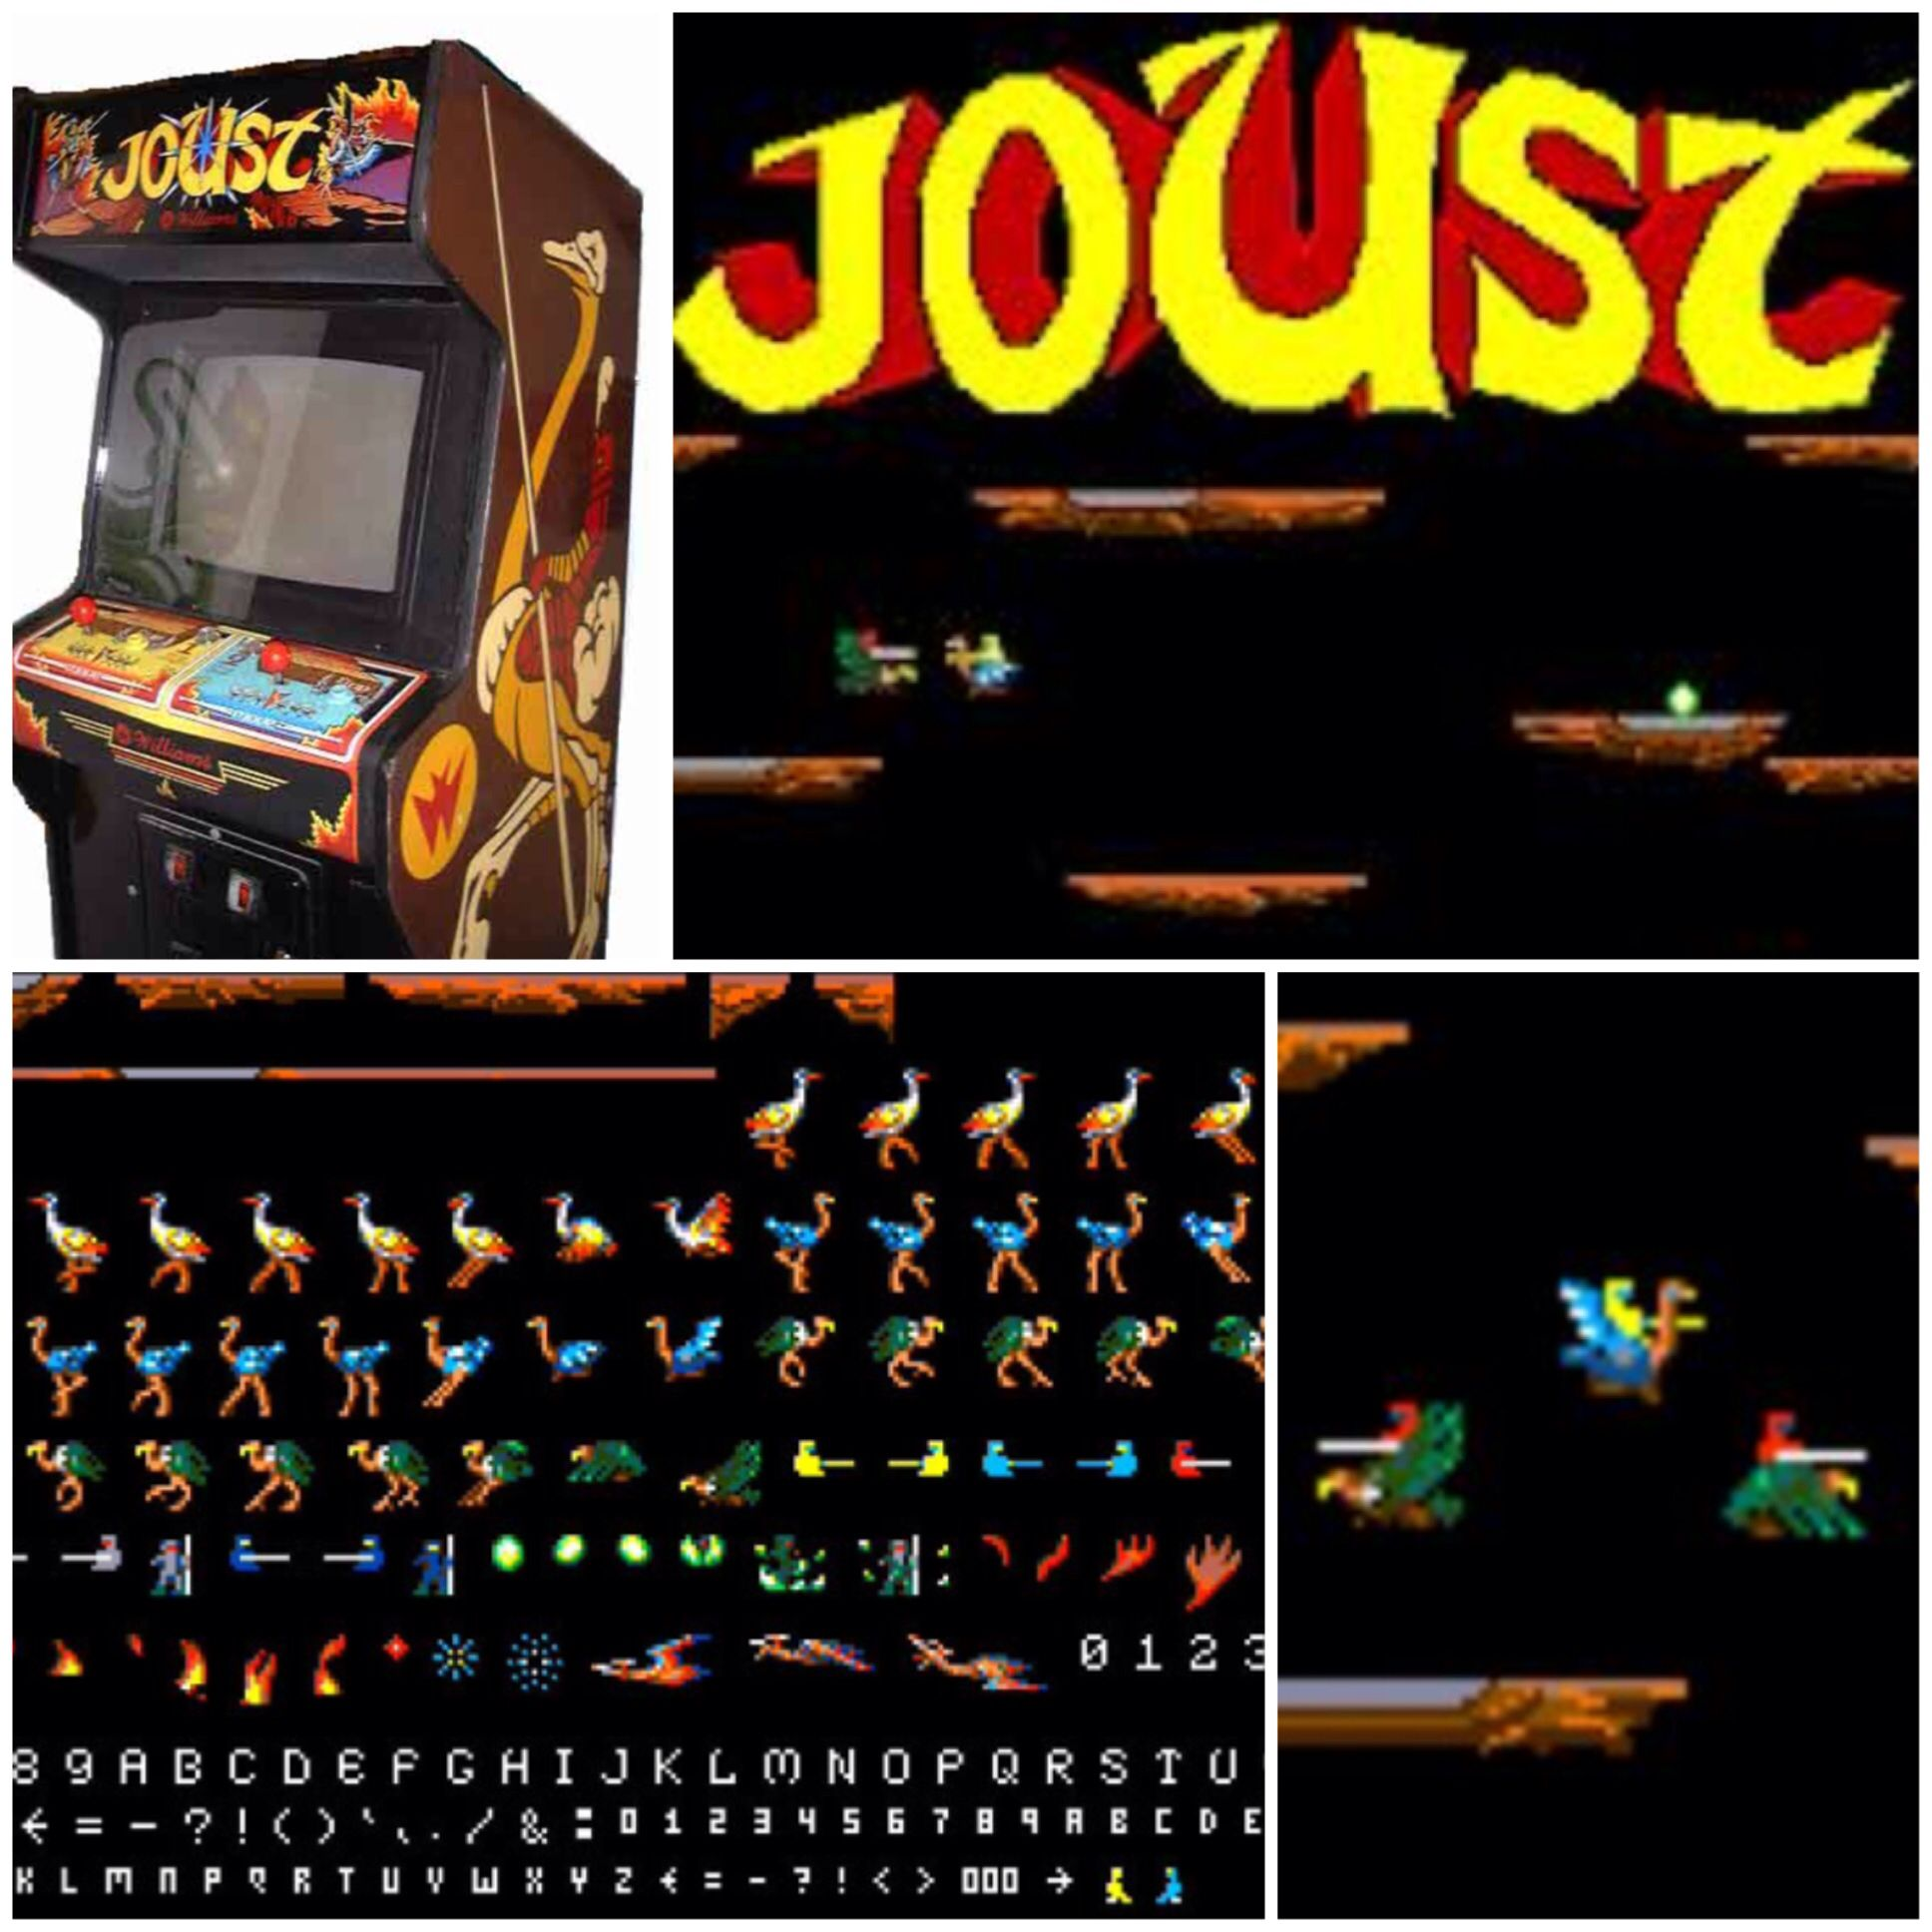 Joust is an arcade game developed by Williams Electronics and